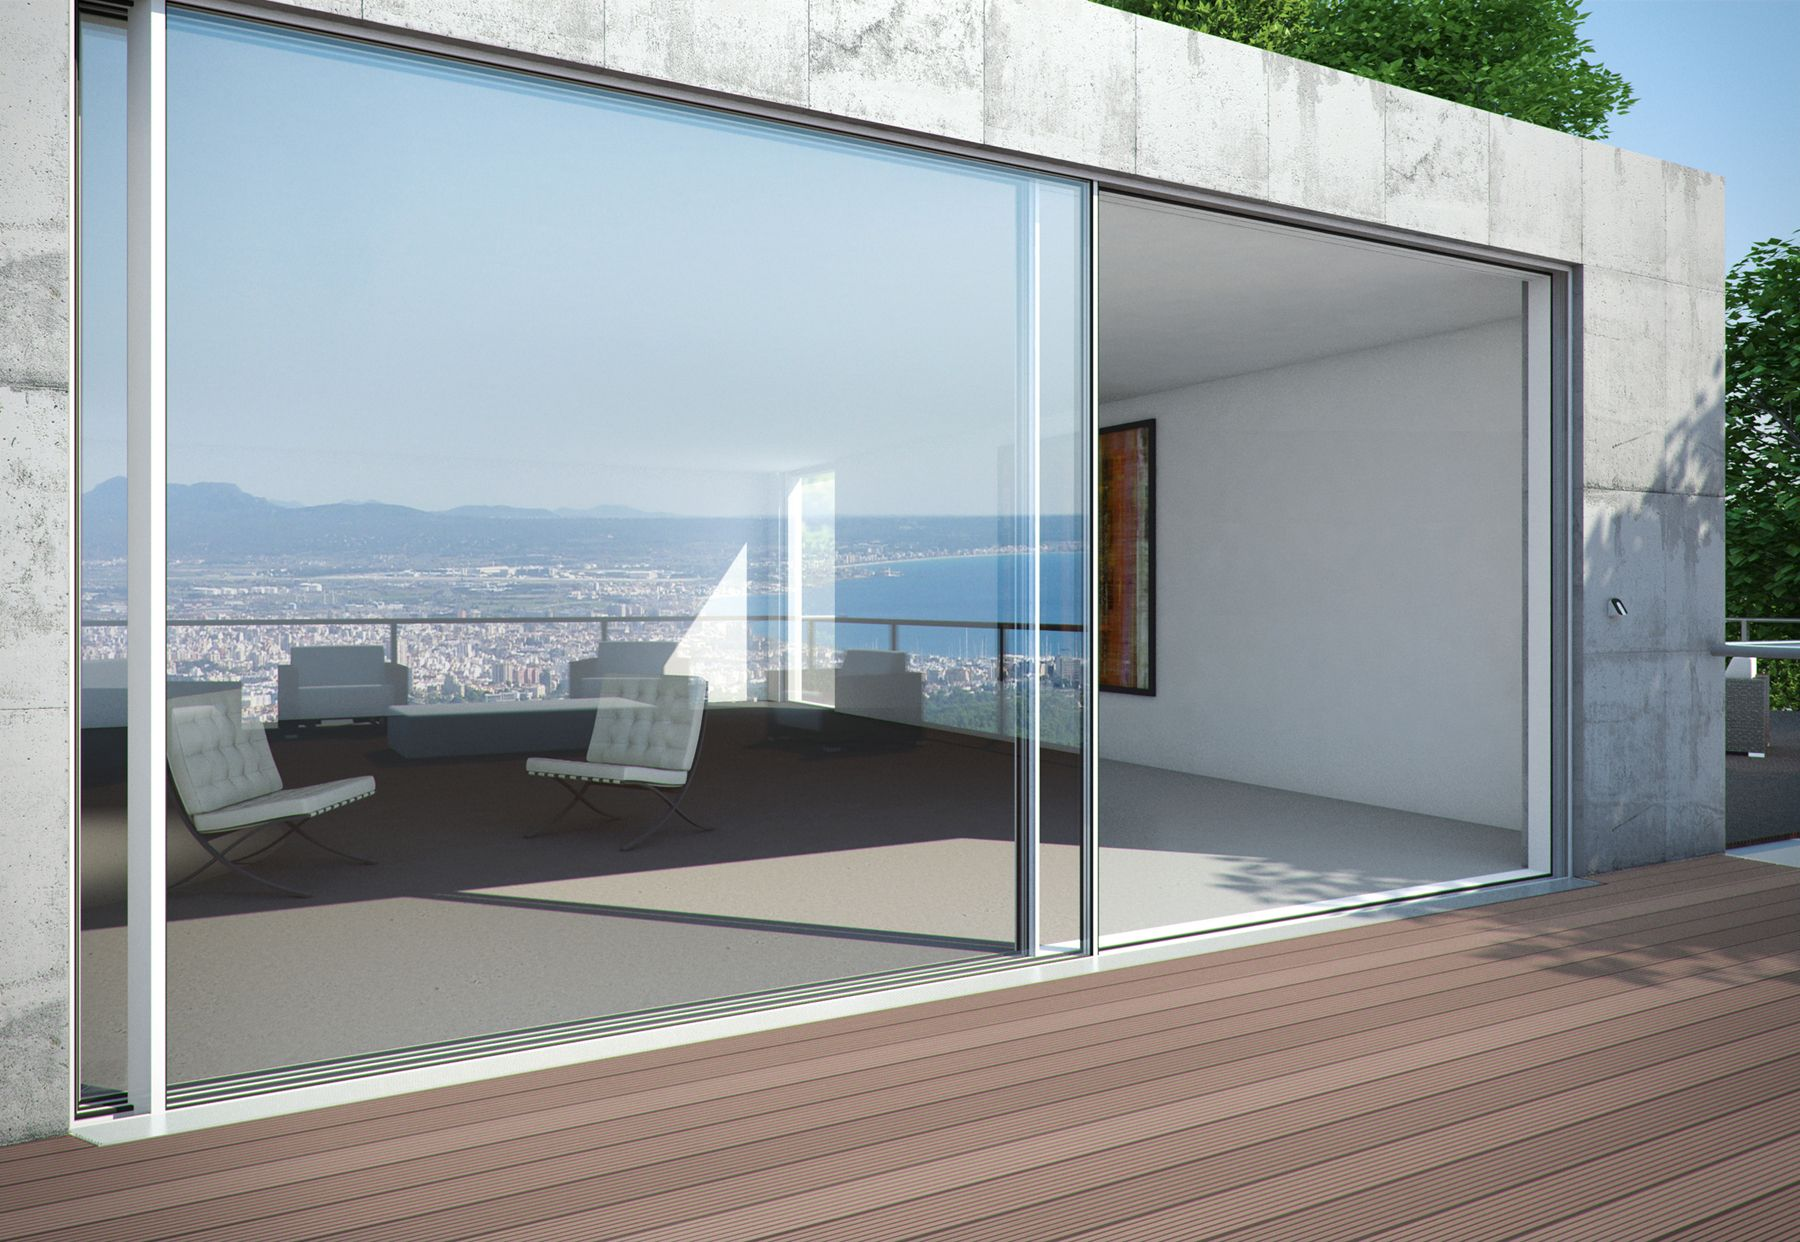 New from the UKu0027s leading building envelope specialist Schueco UK is the ASS 77 PD a range of motorised u0027panoramicu0027 sliding doors offering varying ... & Schüco - Product - Schüco Sliding System ASS 77 PD | door ... pezcame.com